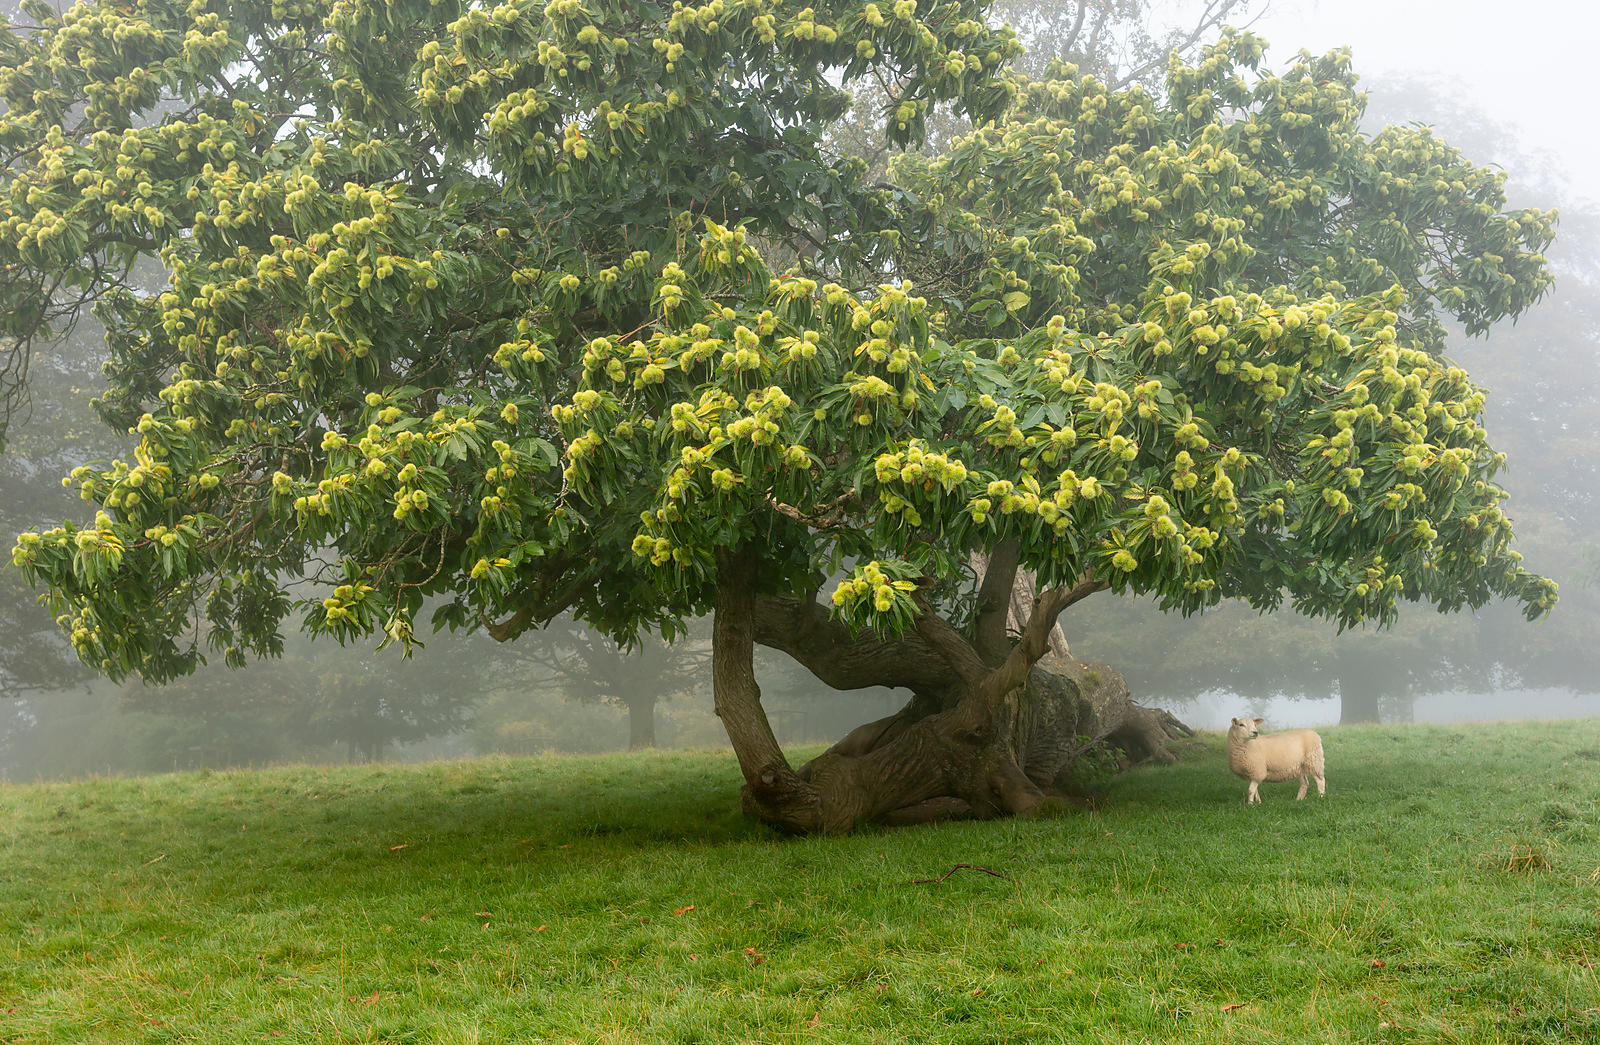 Lamb and sweet chestnut tree in Chatsworth Park